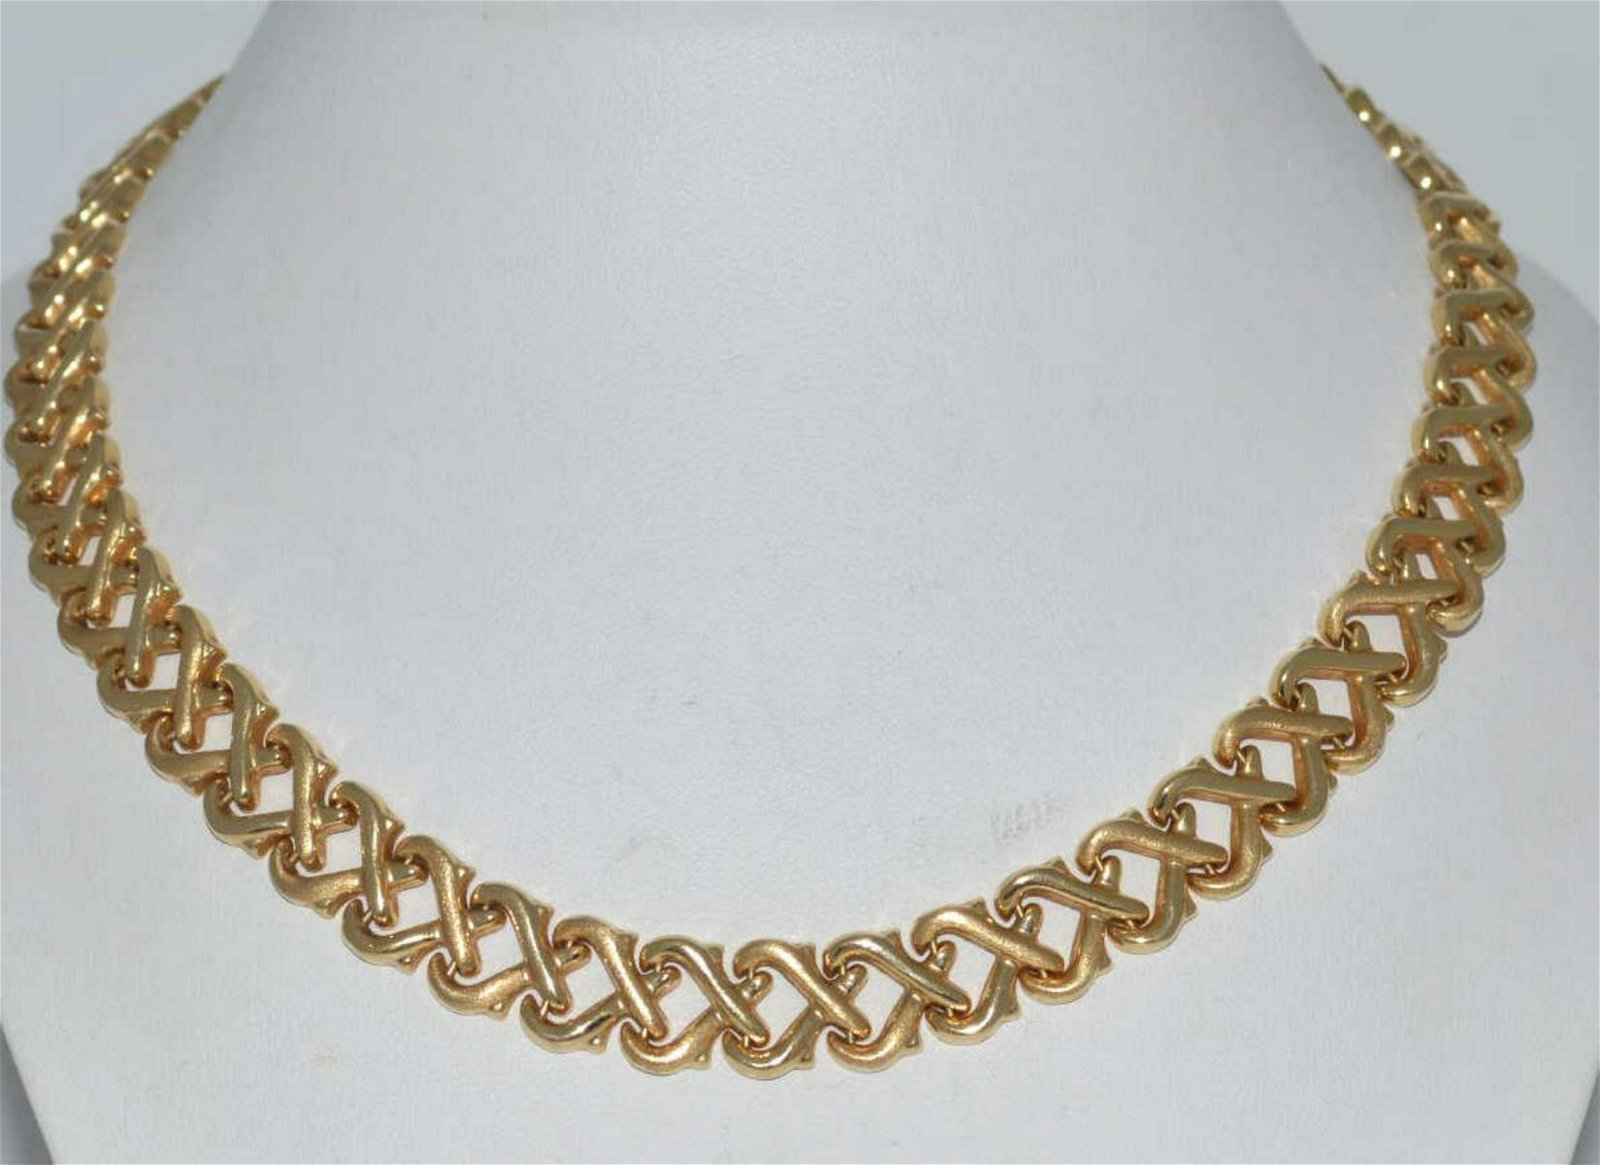 14kt yellow gold fancy link collar necklace